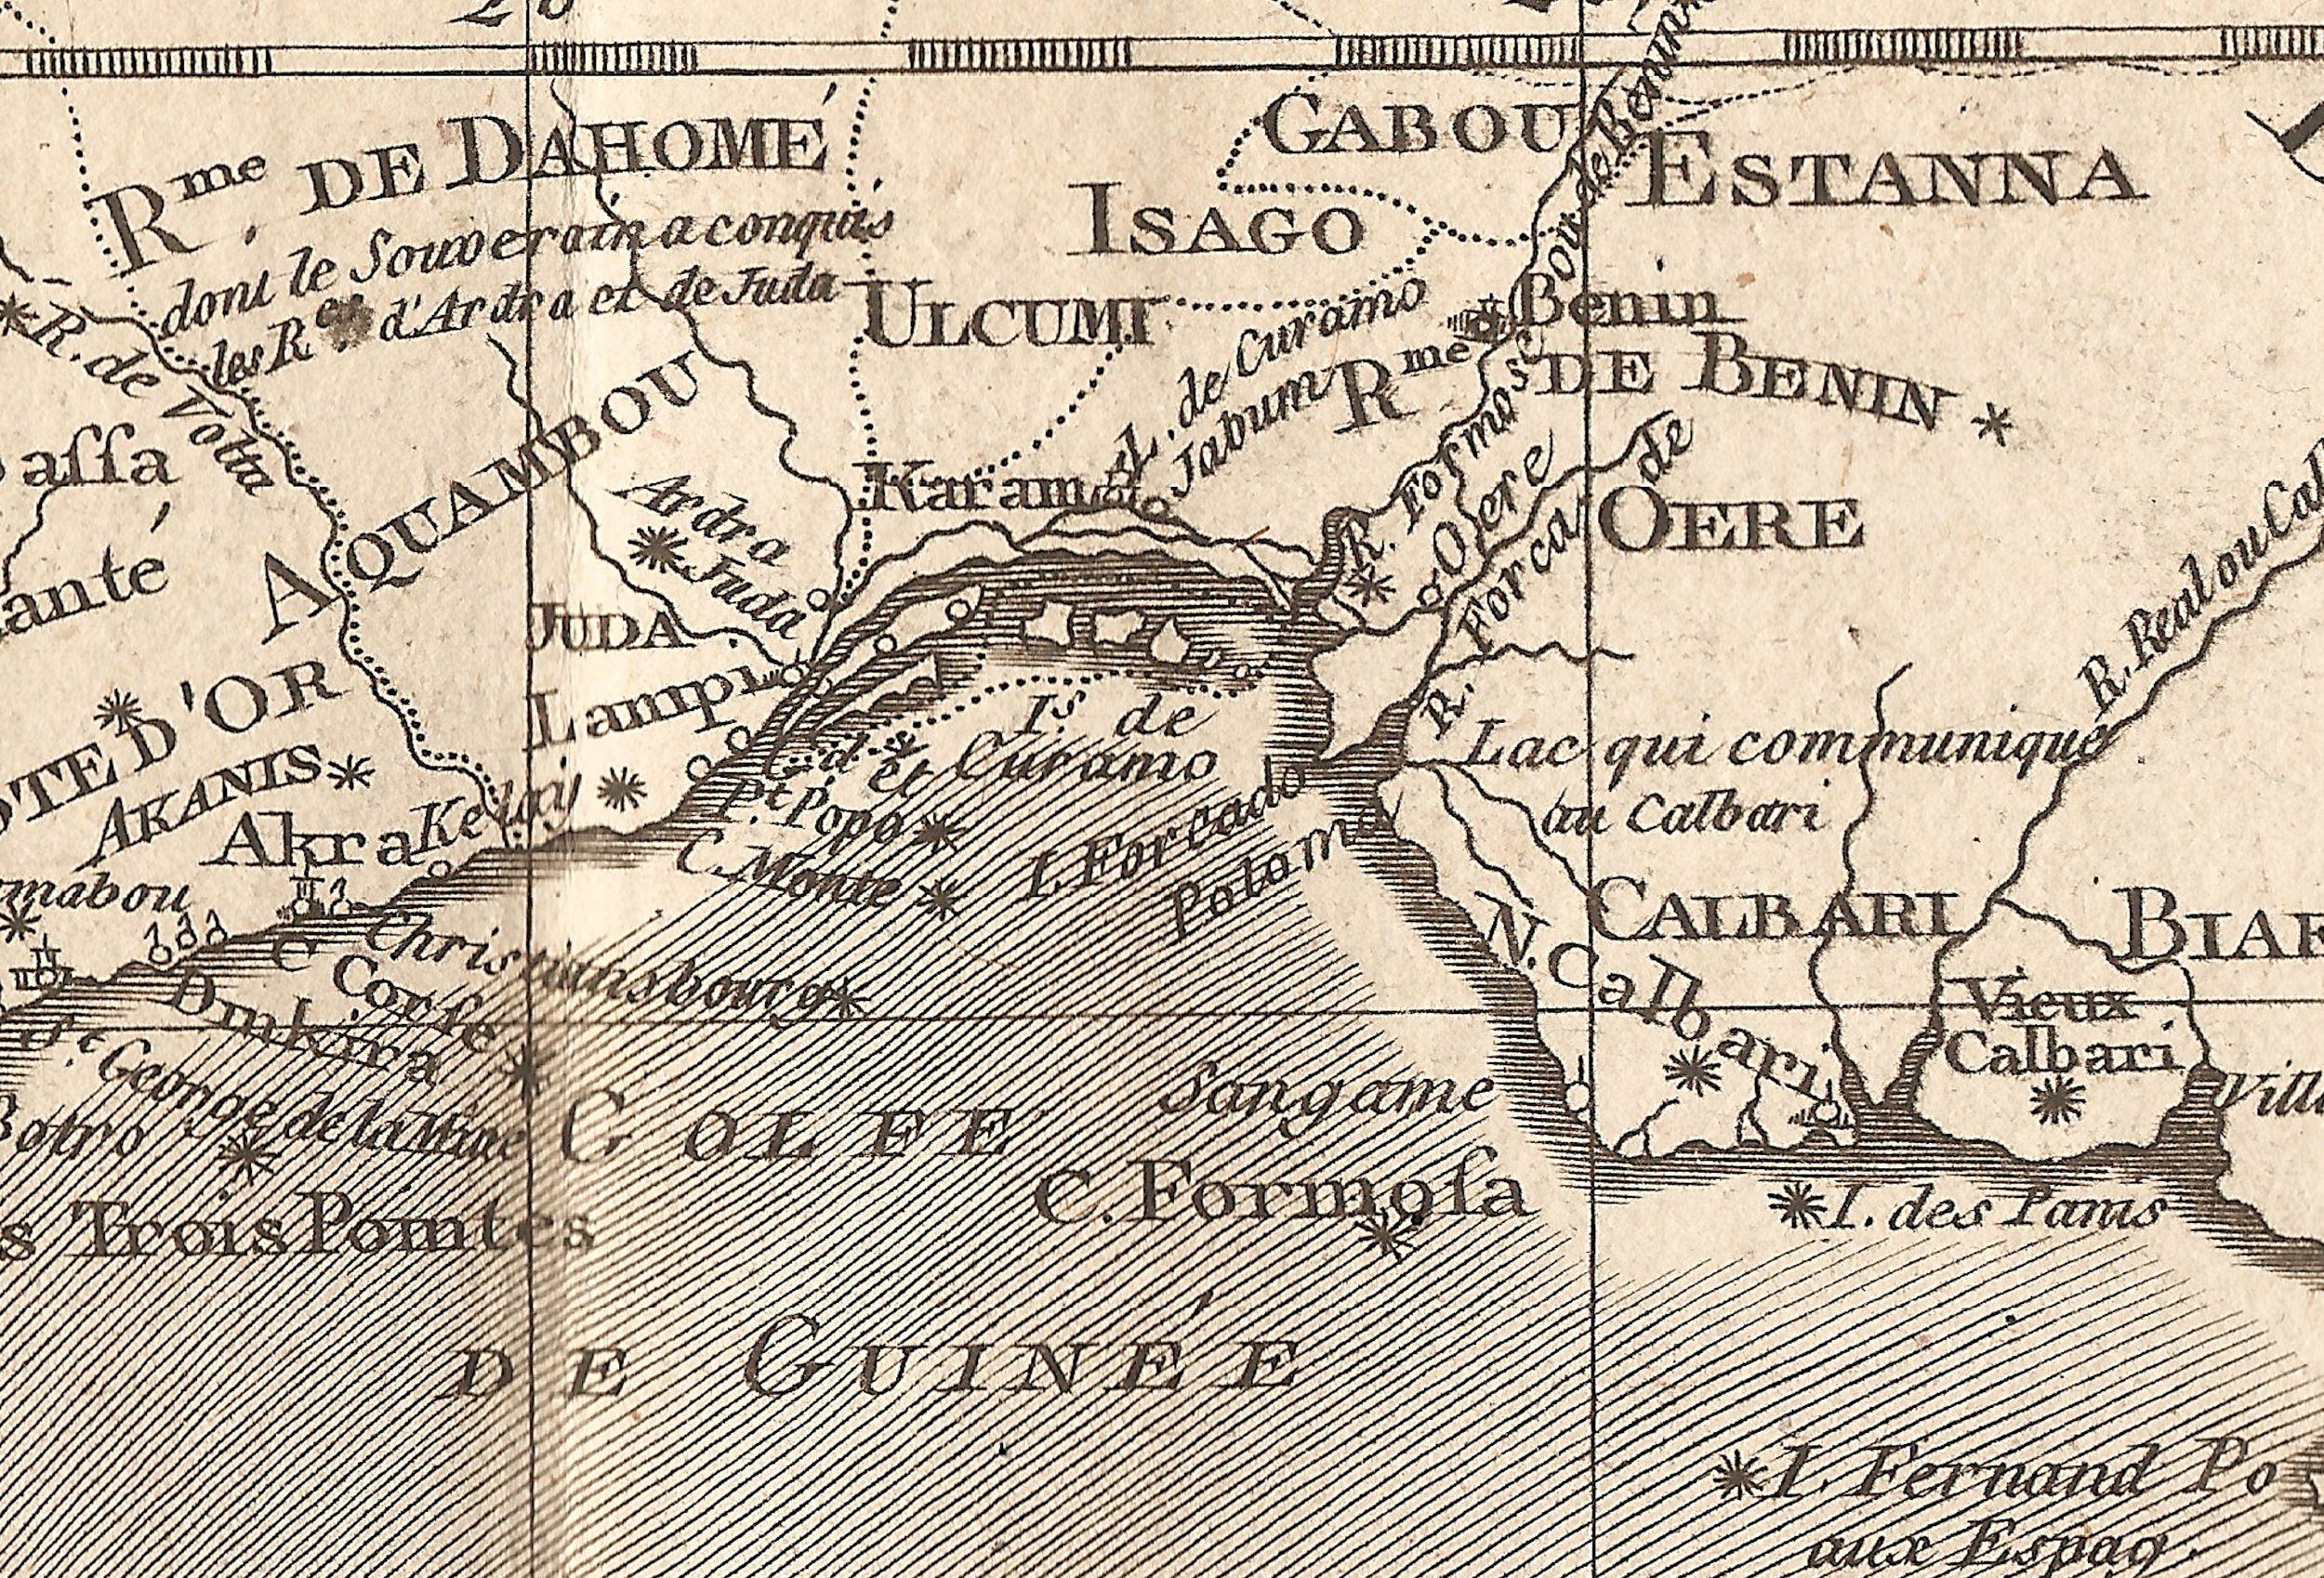 A detail of a historic map of the West African coast that I bought on Ebay for 30 Euros. Here you have various categories for slaves: Arará/Rada from Ardra (Allada), Carabalí from Calbari (Calabar), Lukumí from Ulcumi, etc… even the Àgùdà, Brazilian and Cuban returnees in Yorùbá language, have their name from a port: here written Juda, Ajuda, (Whydah). © Orisha Image